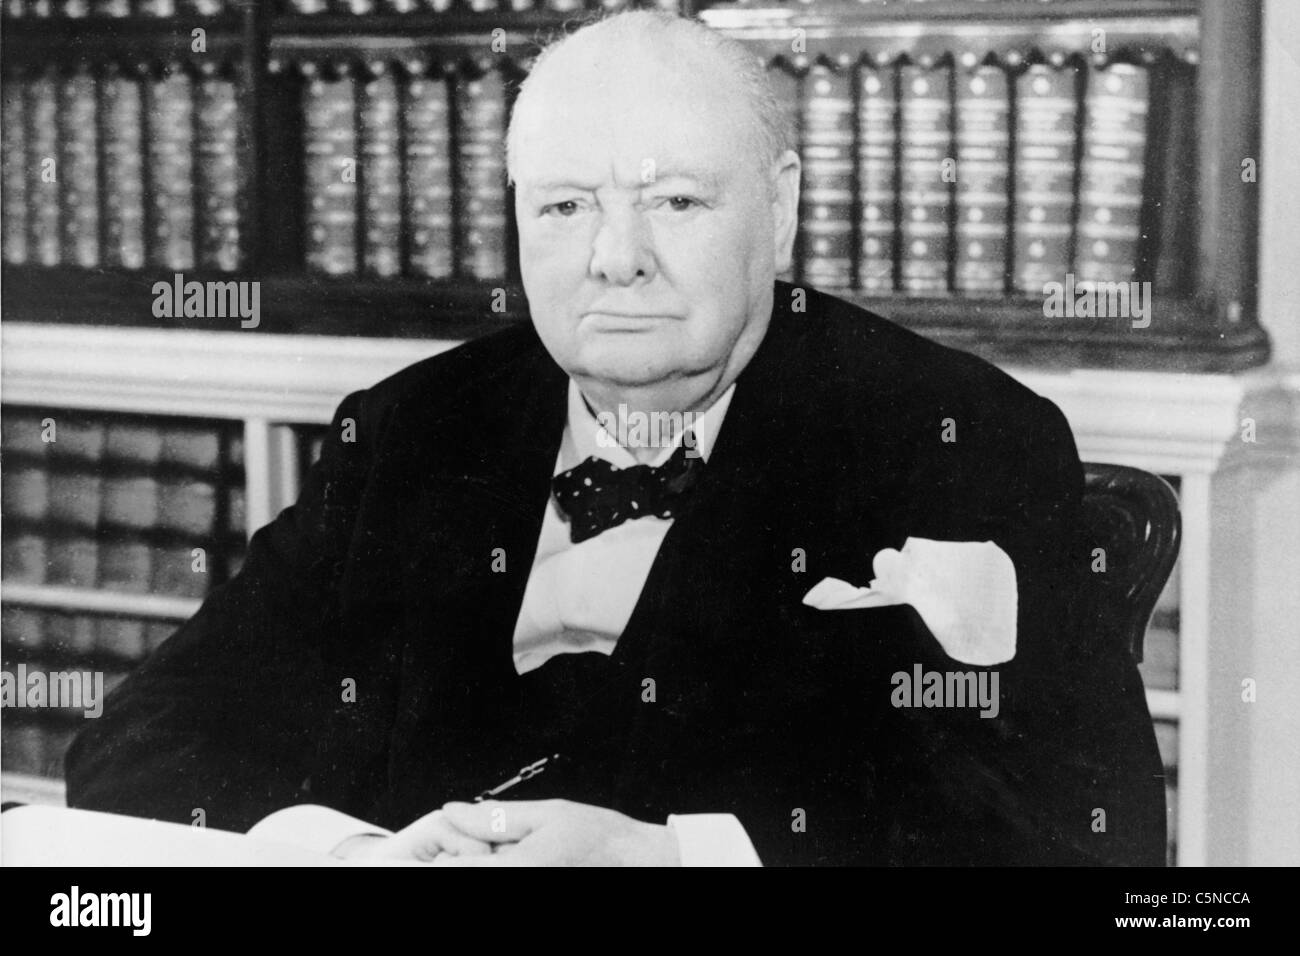 winston churchill - Stock Image